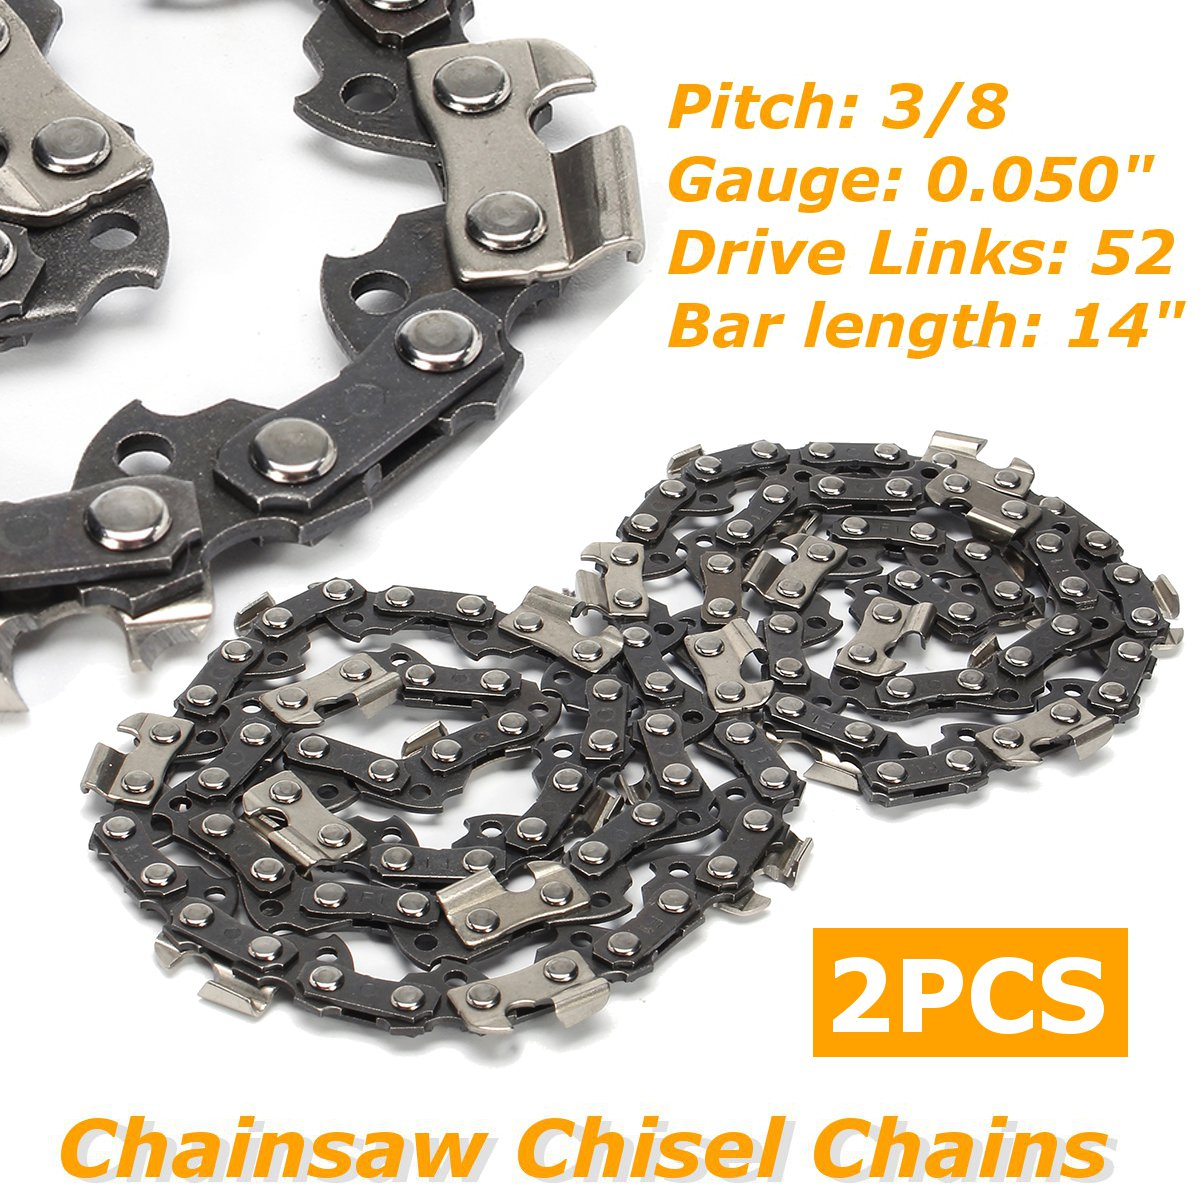 2pcs/set 14 Inch Chainsaw Saw Chain Drive Link Pitch 52 Link 3/8LP 050 Gauge Chainsaw Blade For Husqvarna Garden Tools